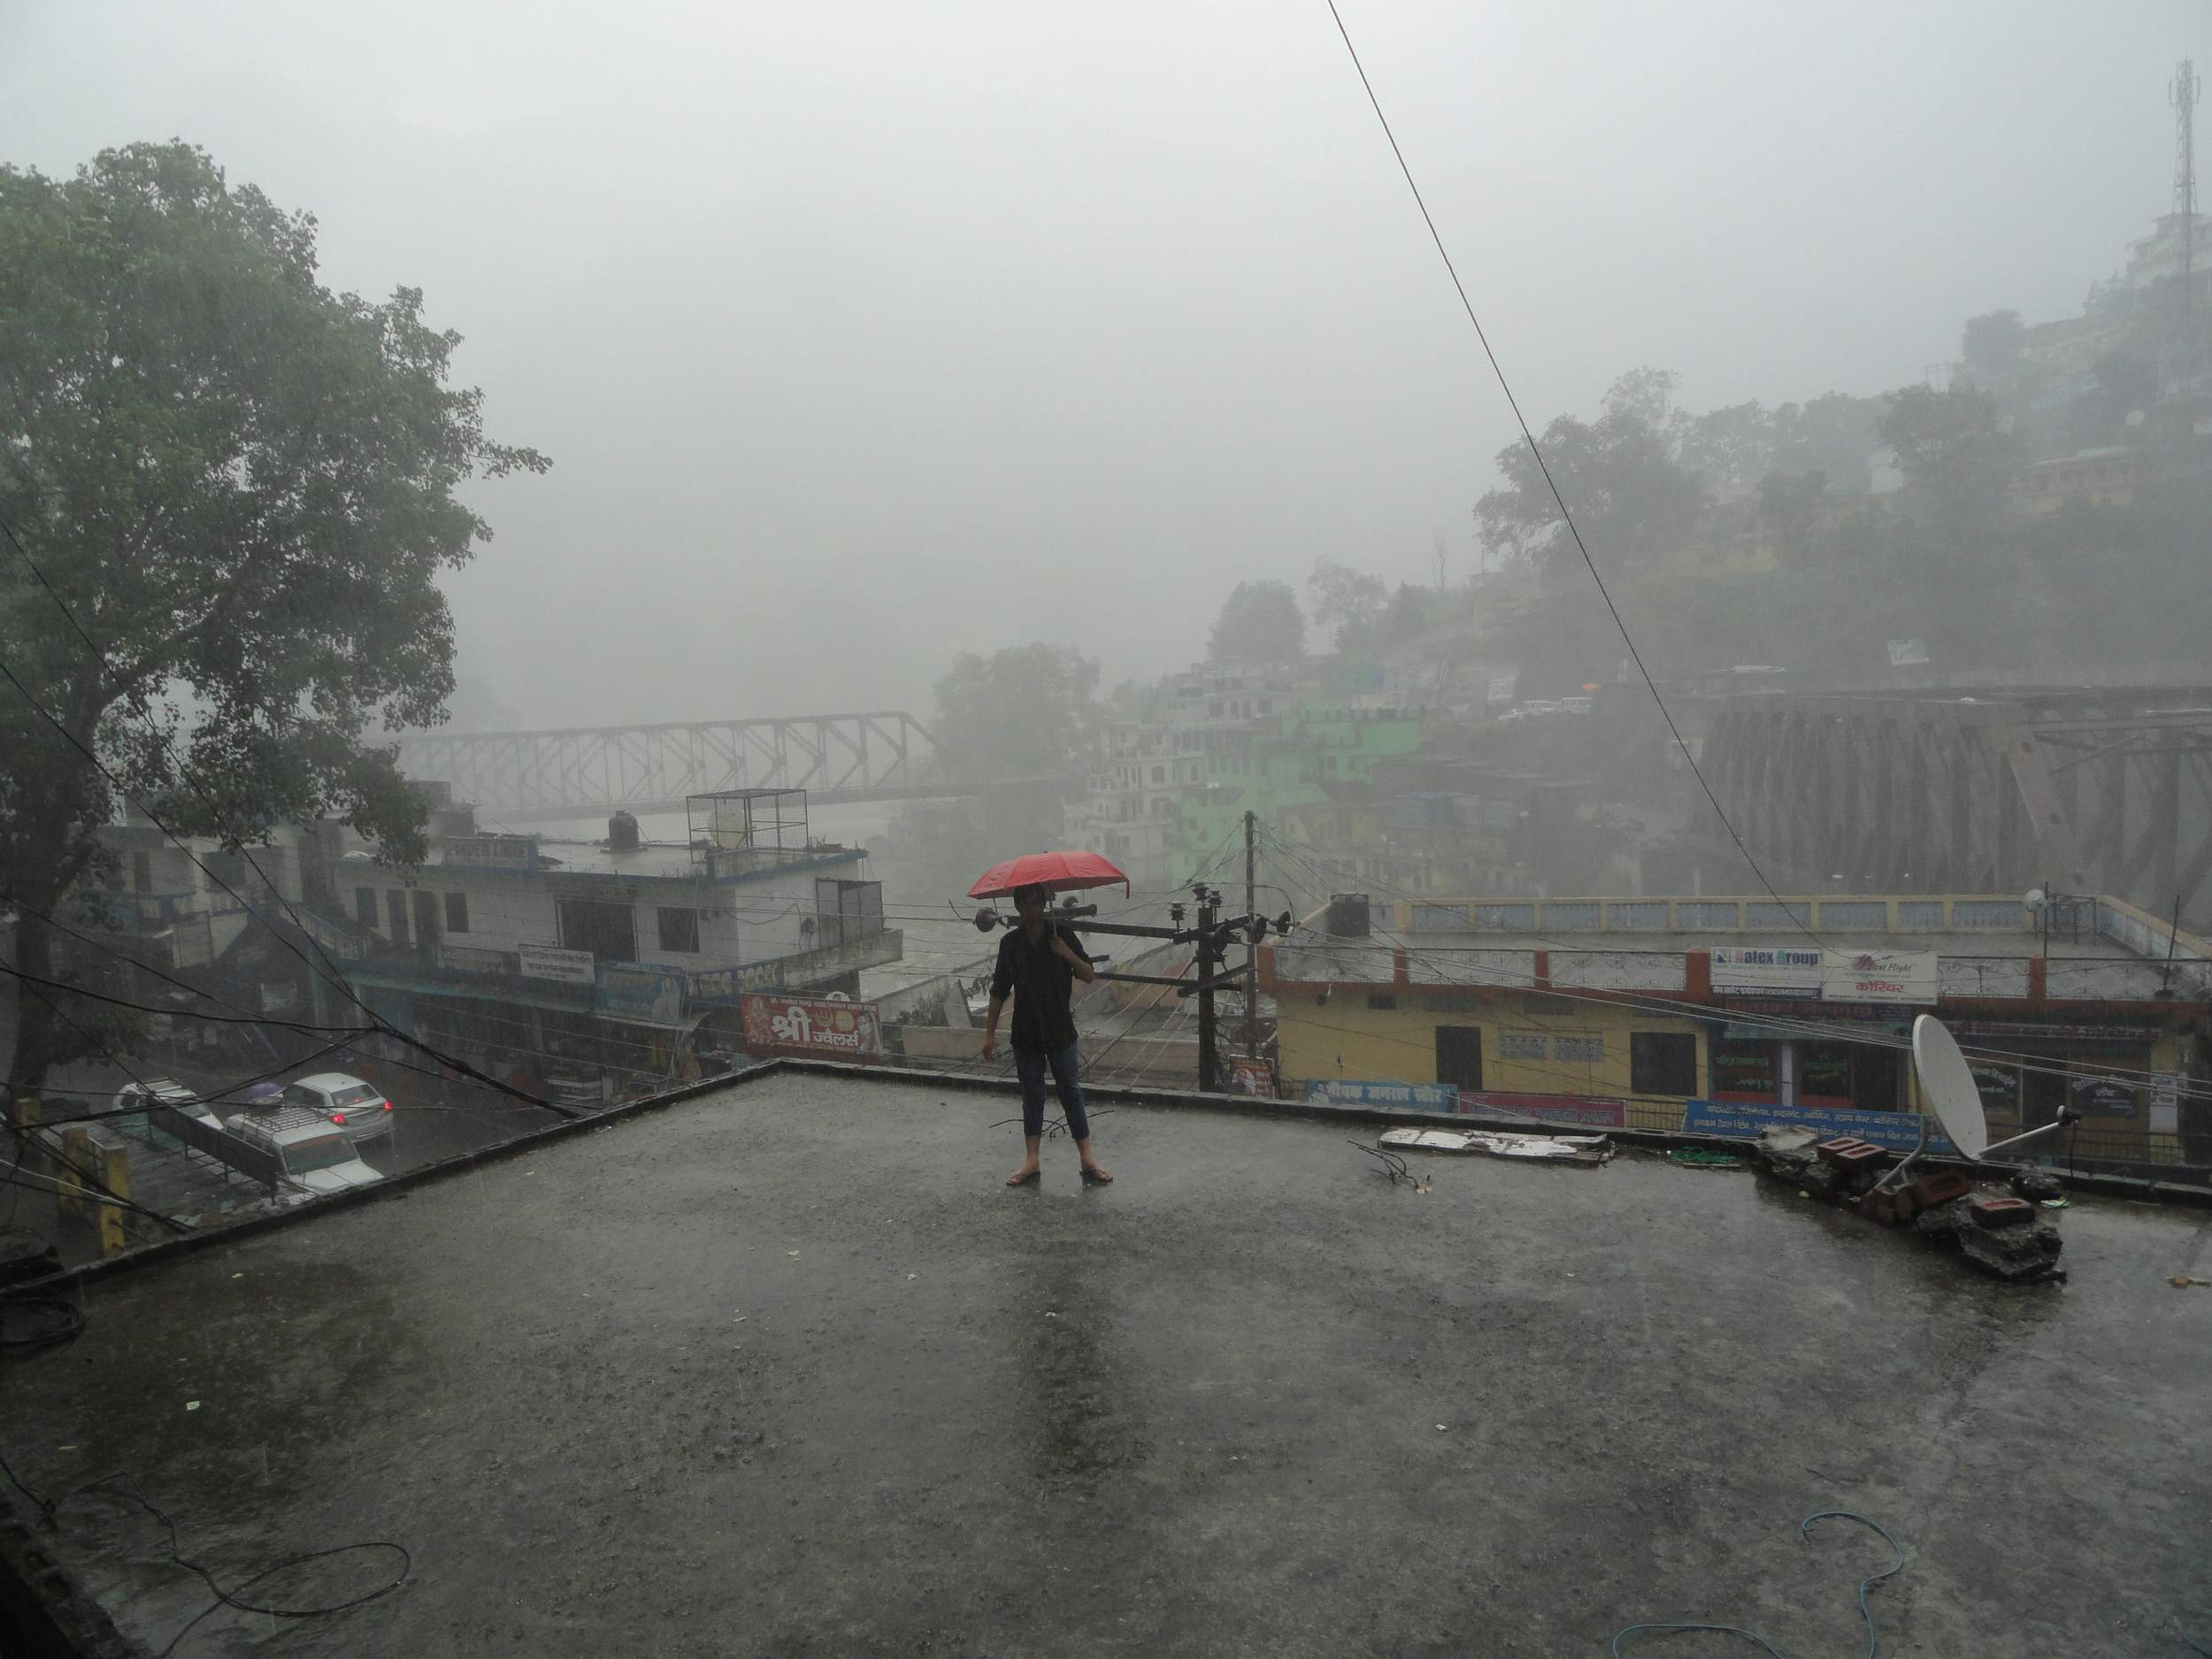 rain and flood hit uttarakhand before monsoon